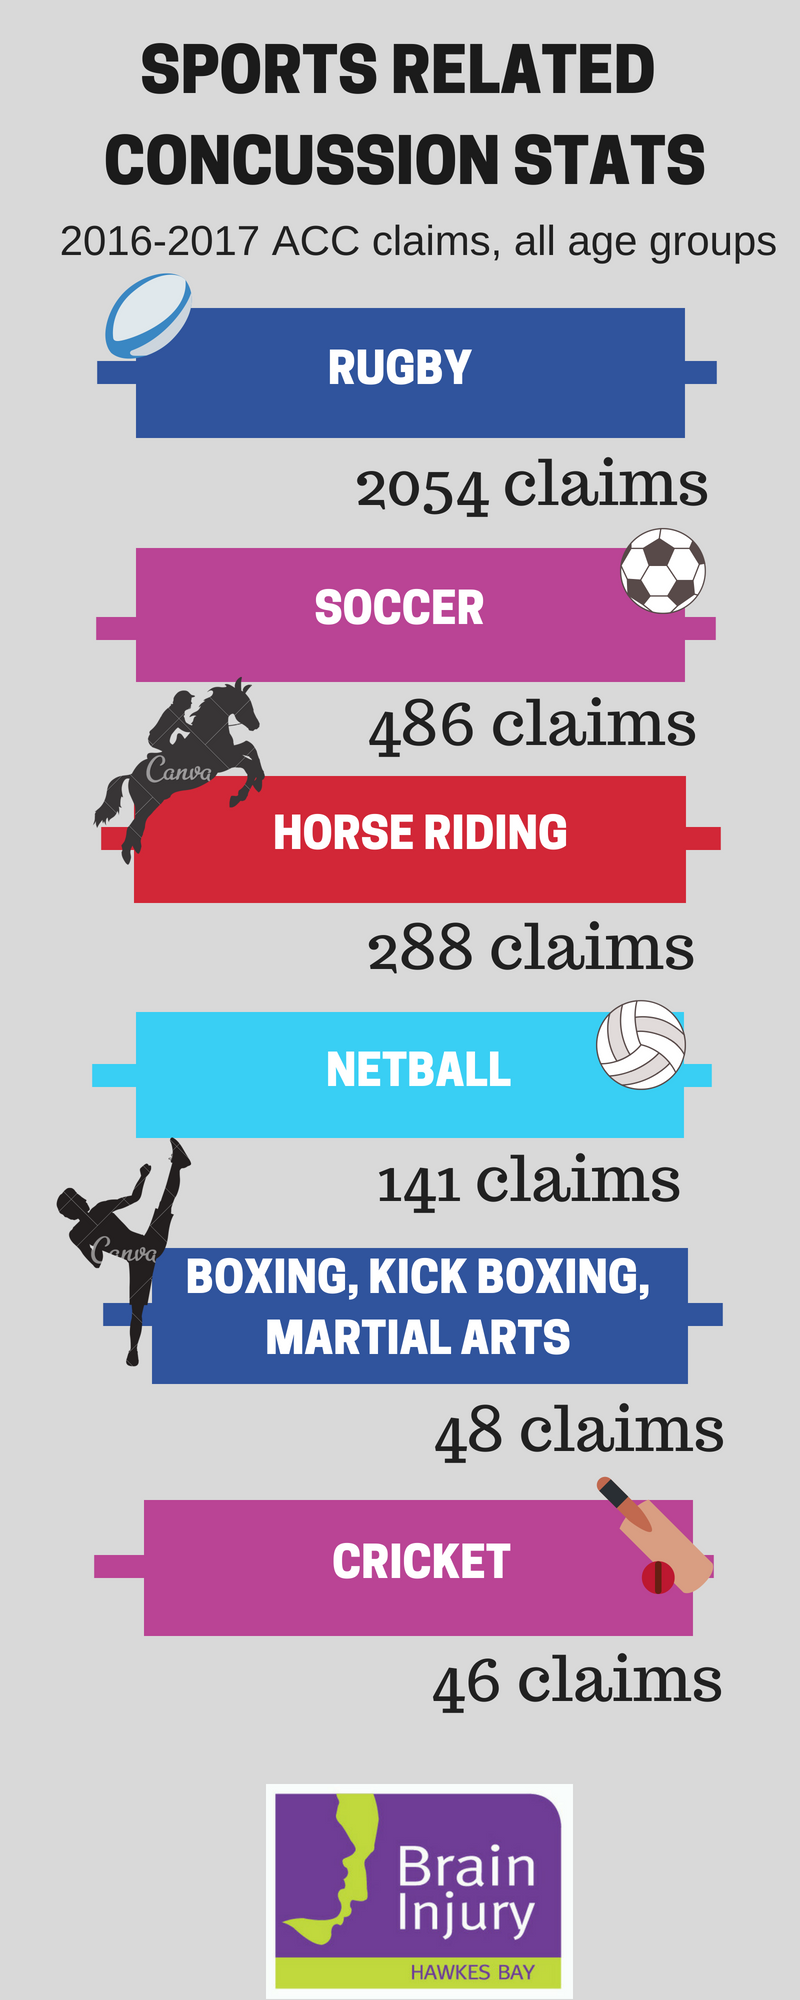 SPORTS RELATED CONCUSSION STATS